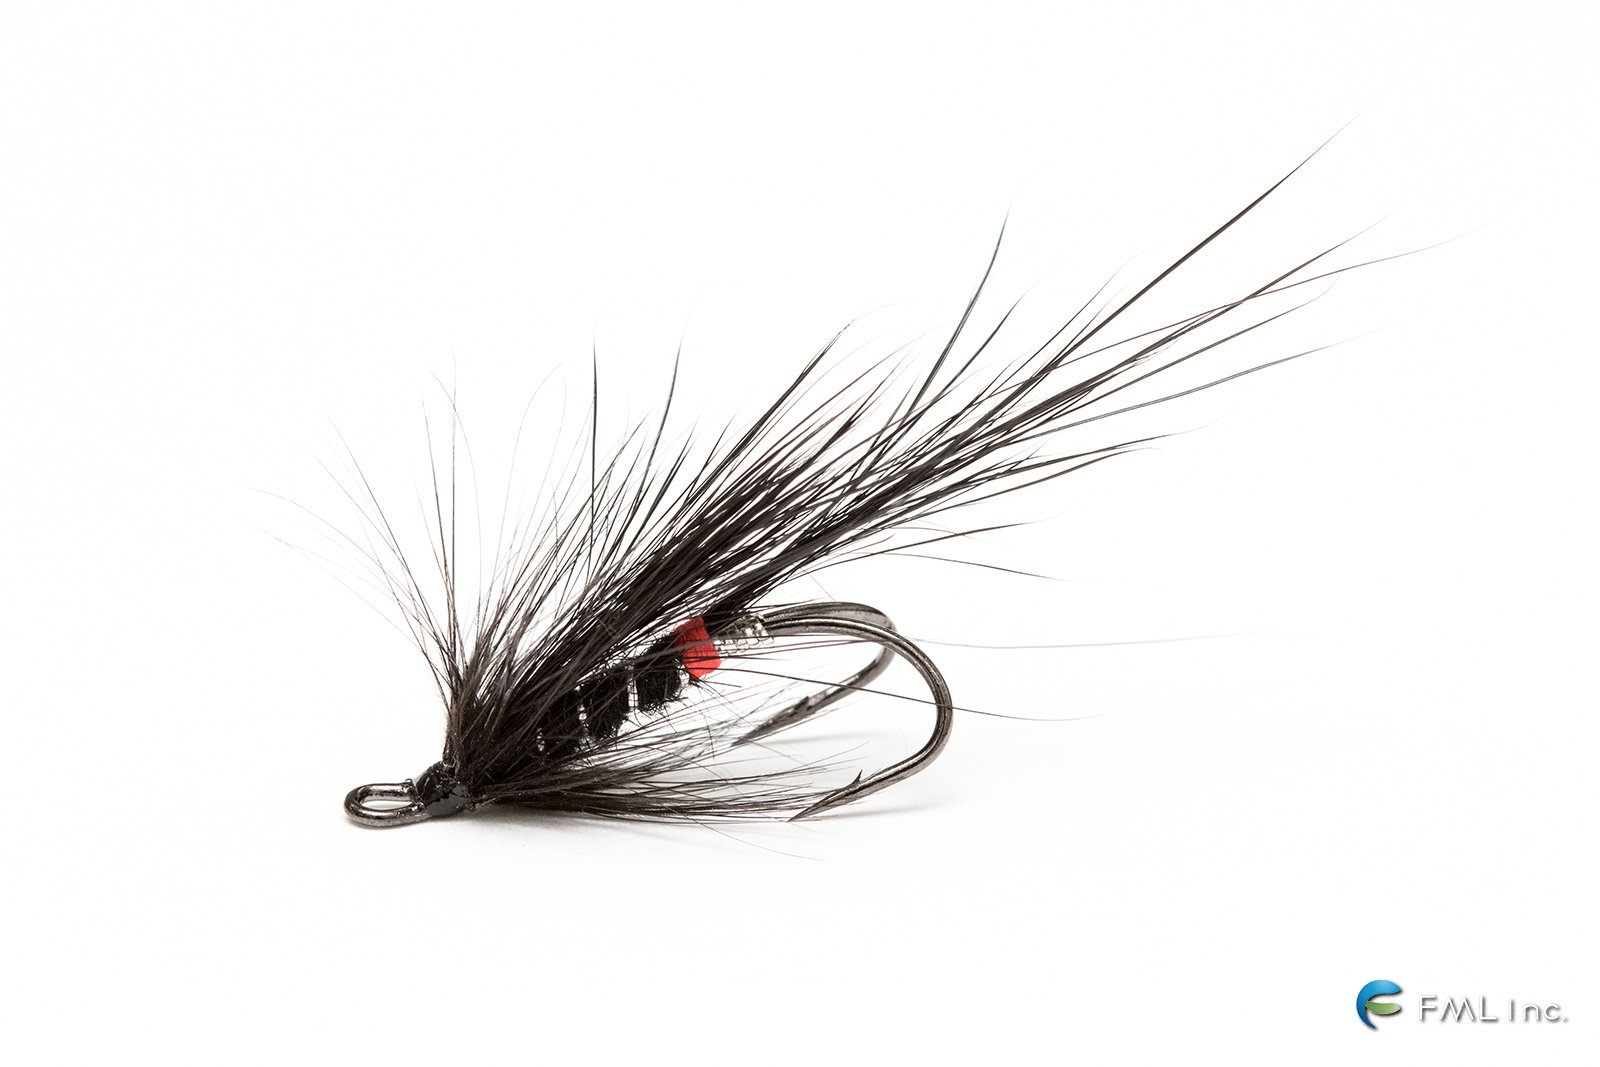 <img class='new_mark_img1' src='//img.shop-pro.jp/img/new/icons5.gif' style='border:none;display:inline;margin:0px;padding:0px;width:auto;' />Eumer Harri's Special Salmon Fly (Nutria wing)